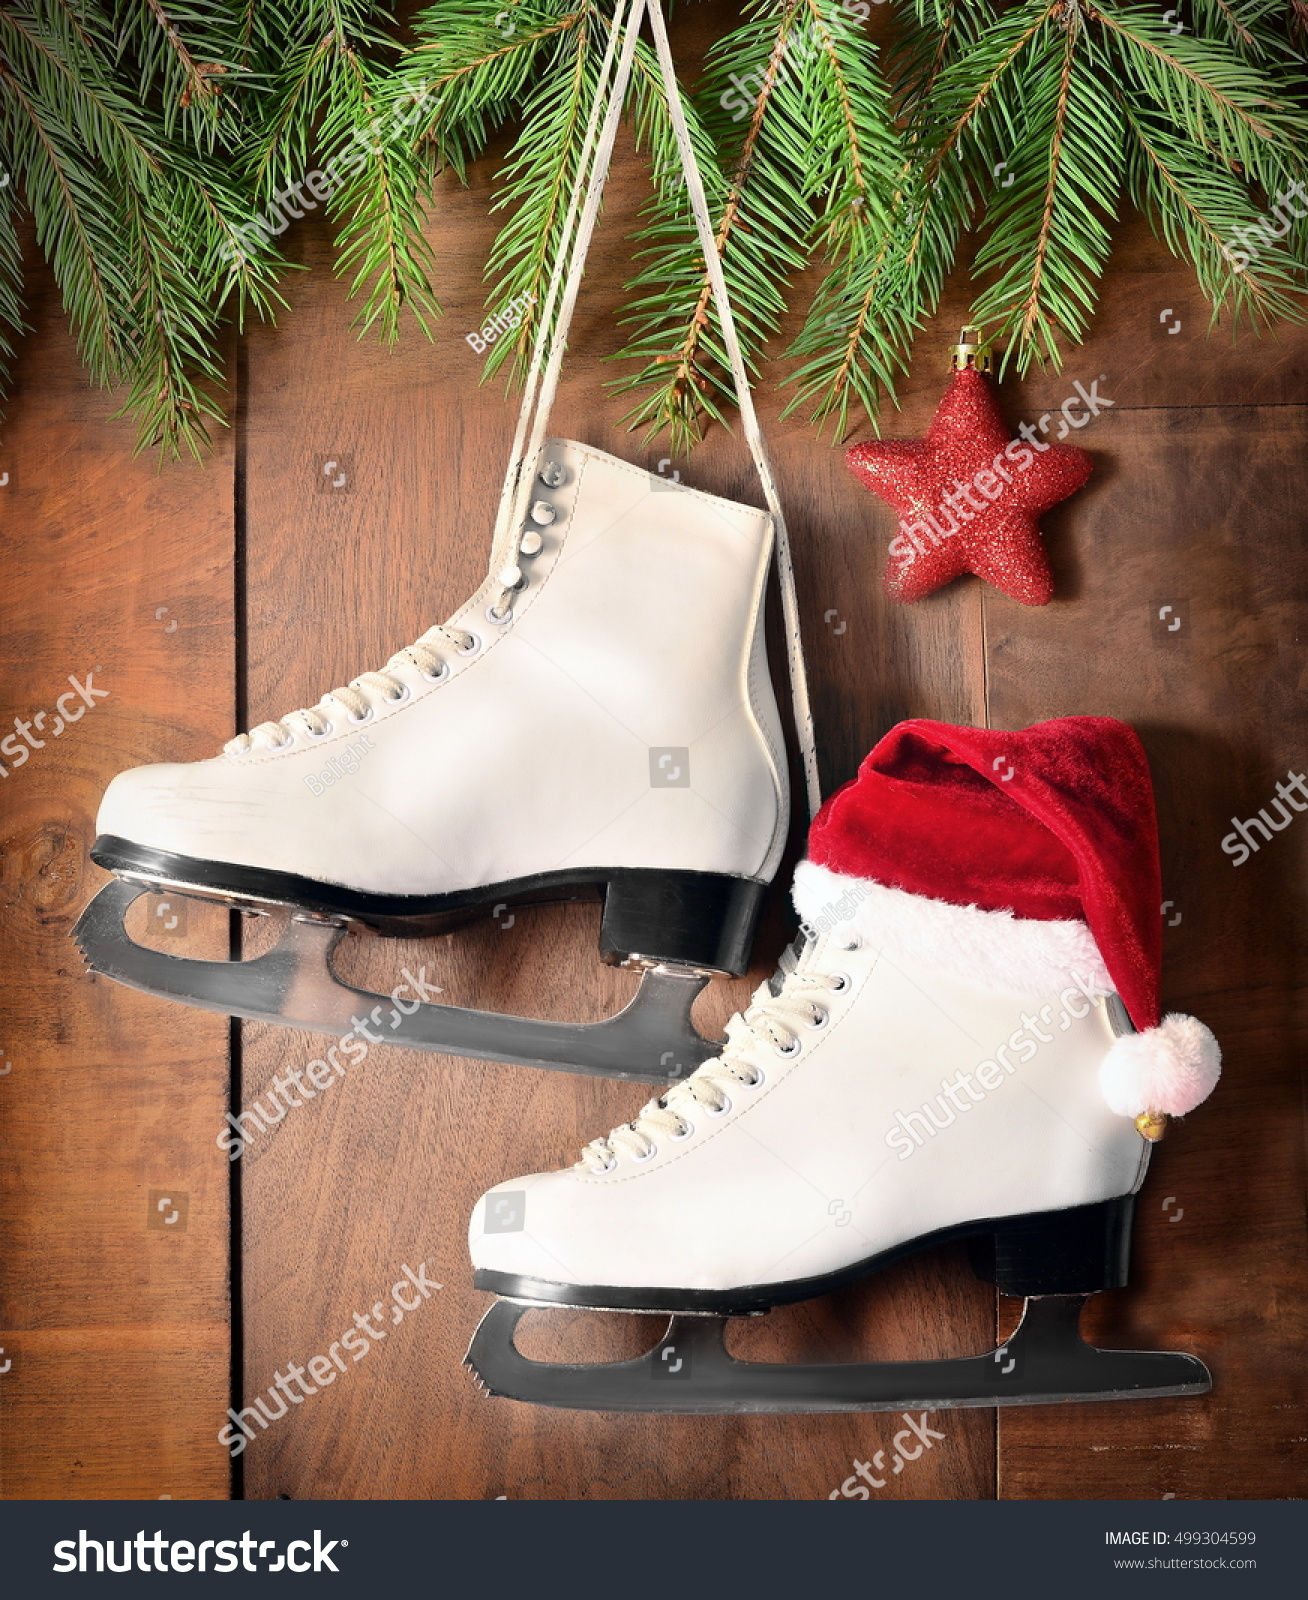 christmas decoration white ice skates for figure skating hanging on a wooden background - Ice Skate Christmas Decoration